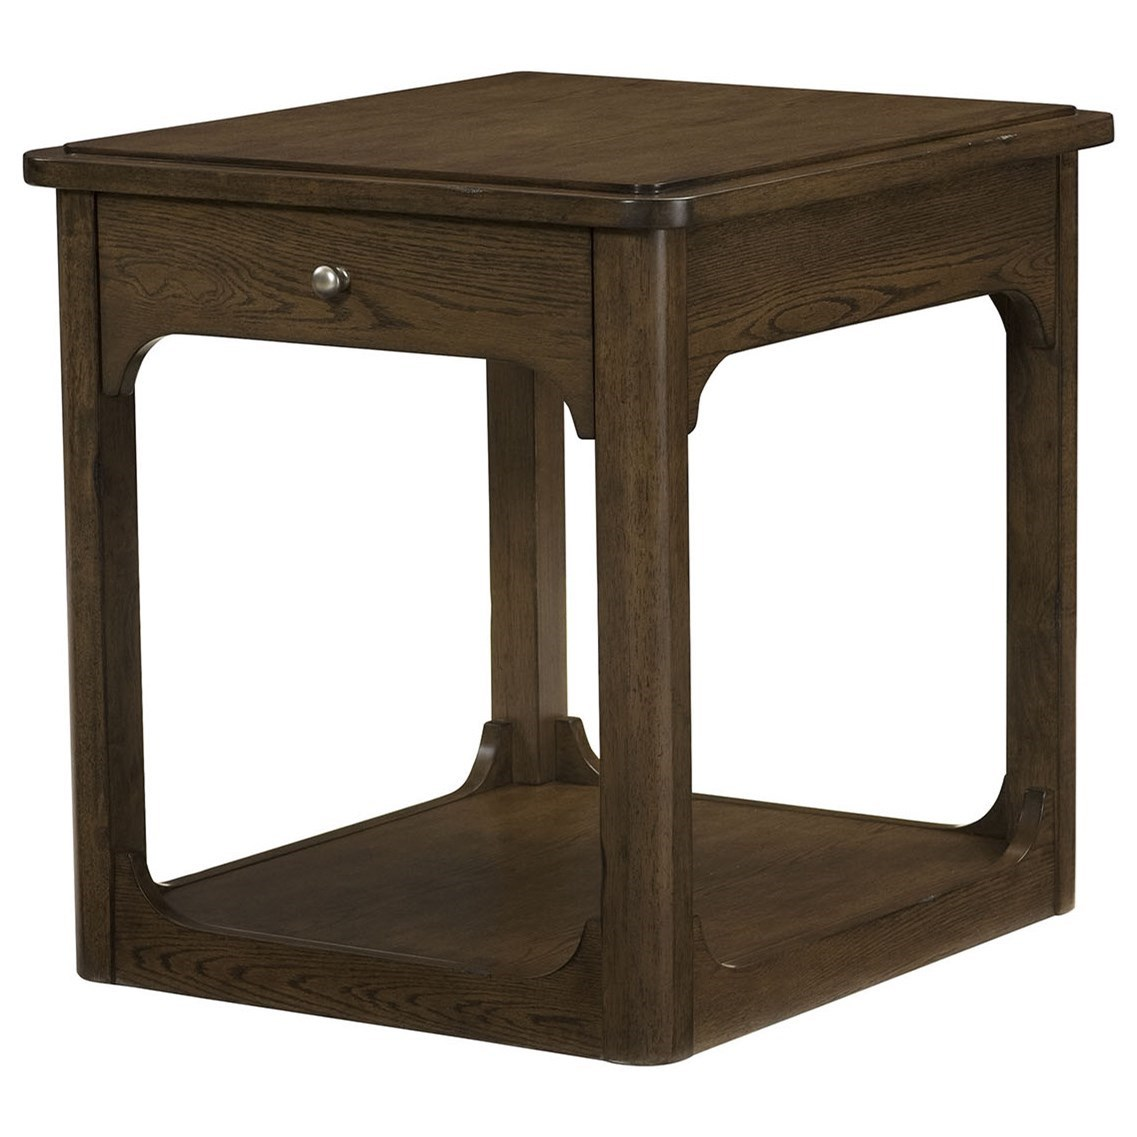 Facet Rectangular Drawer End Table by Hammary at Stoney Creek Furniture